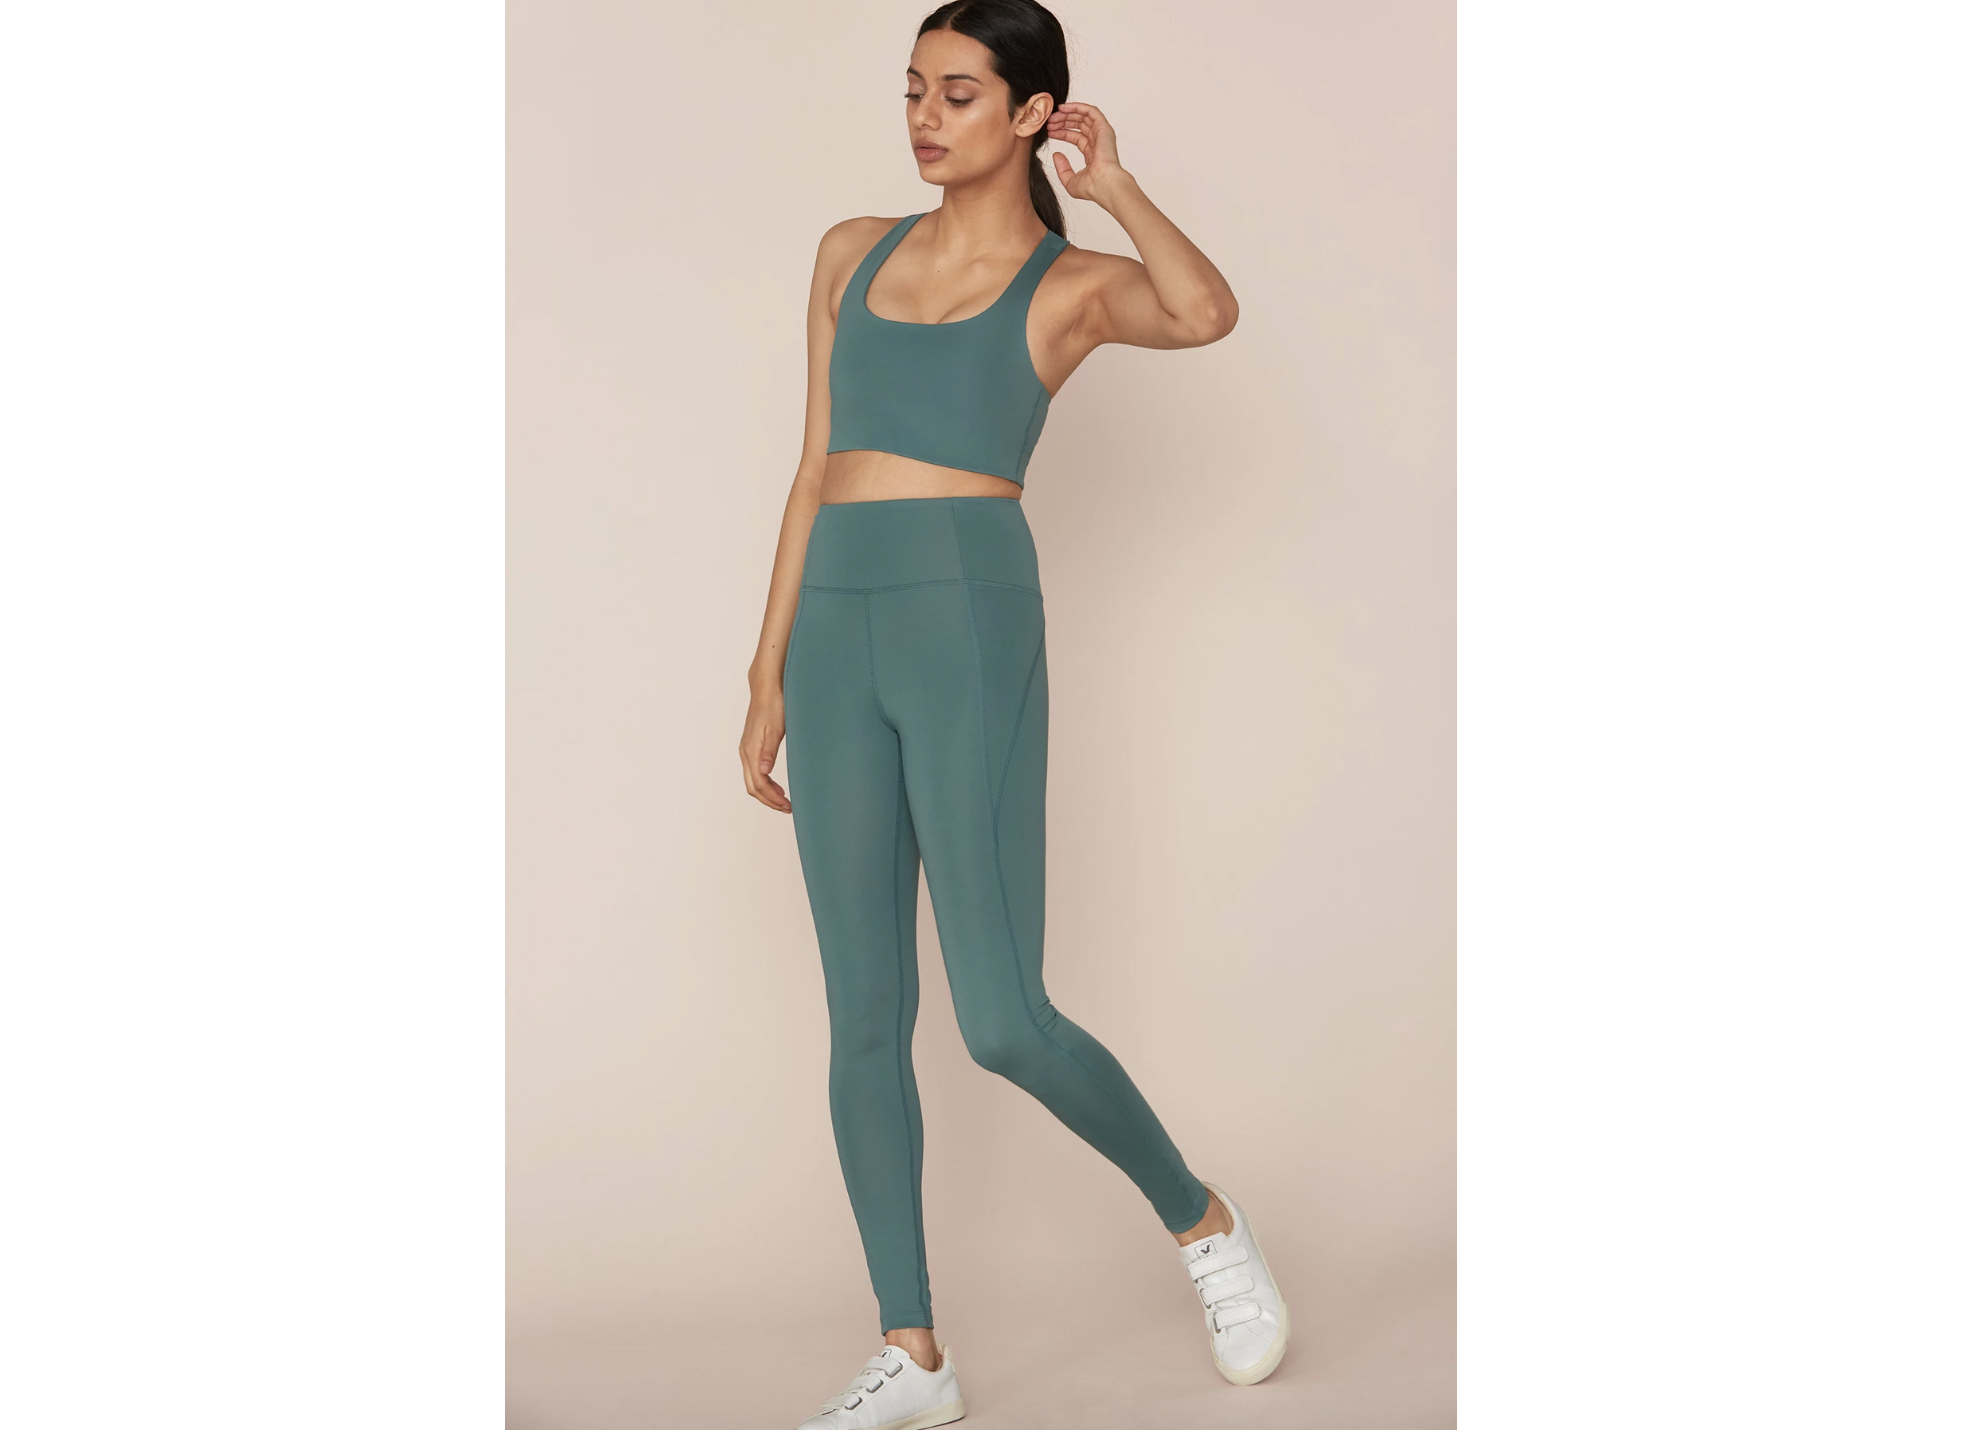 Jade Compressive Workout Set from Girlfriend Collective